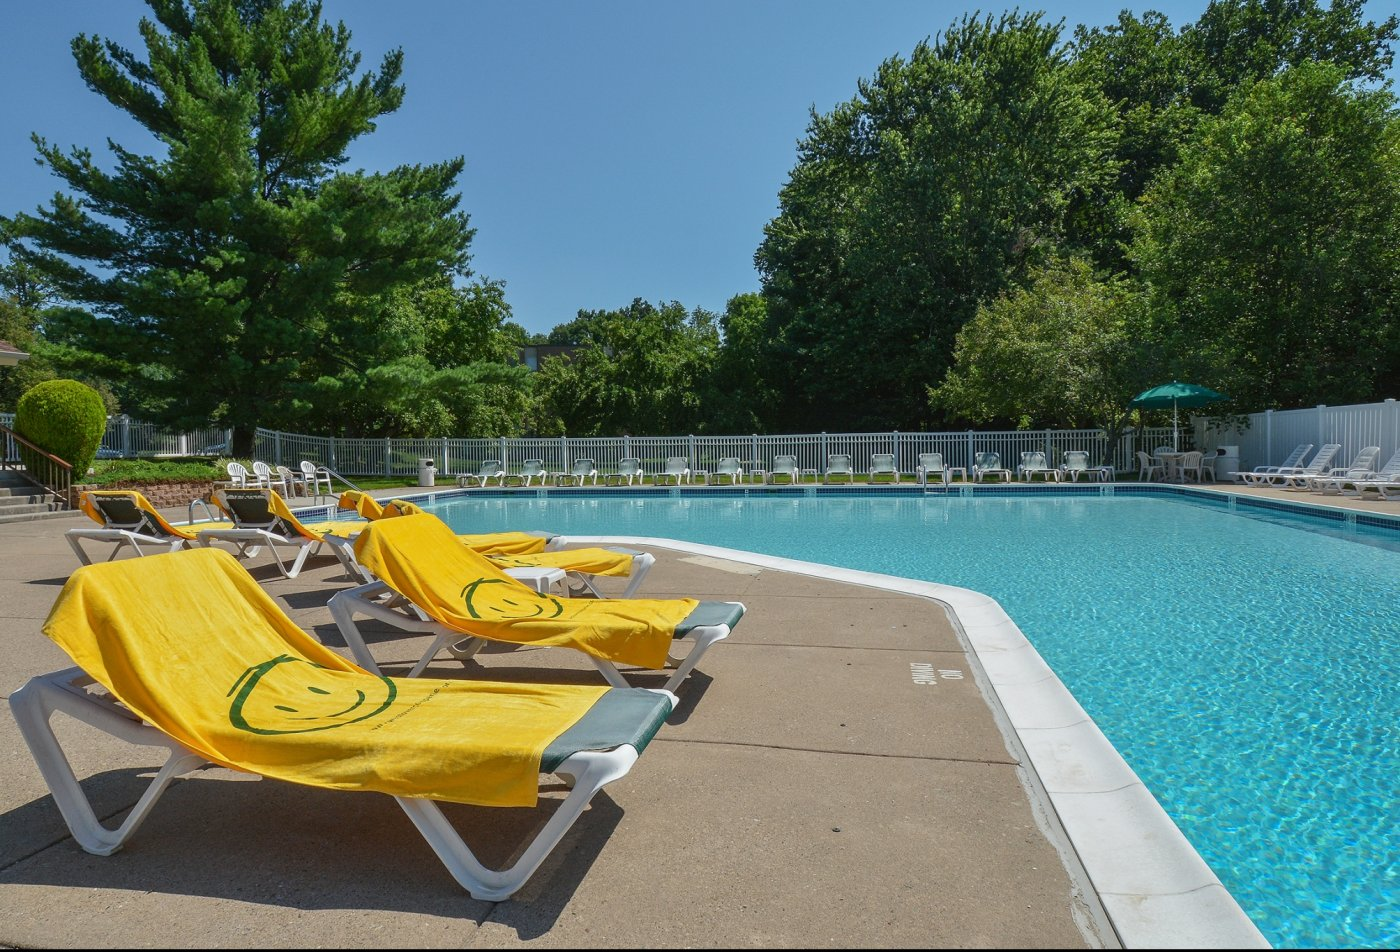 Swimming Pool | Apartment Homes in Langhorne, PA | Summit Trace Apartments